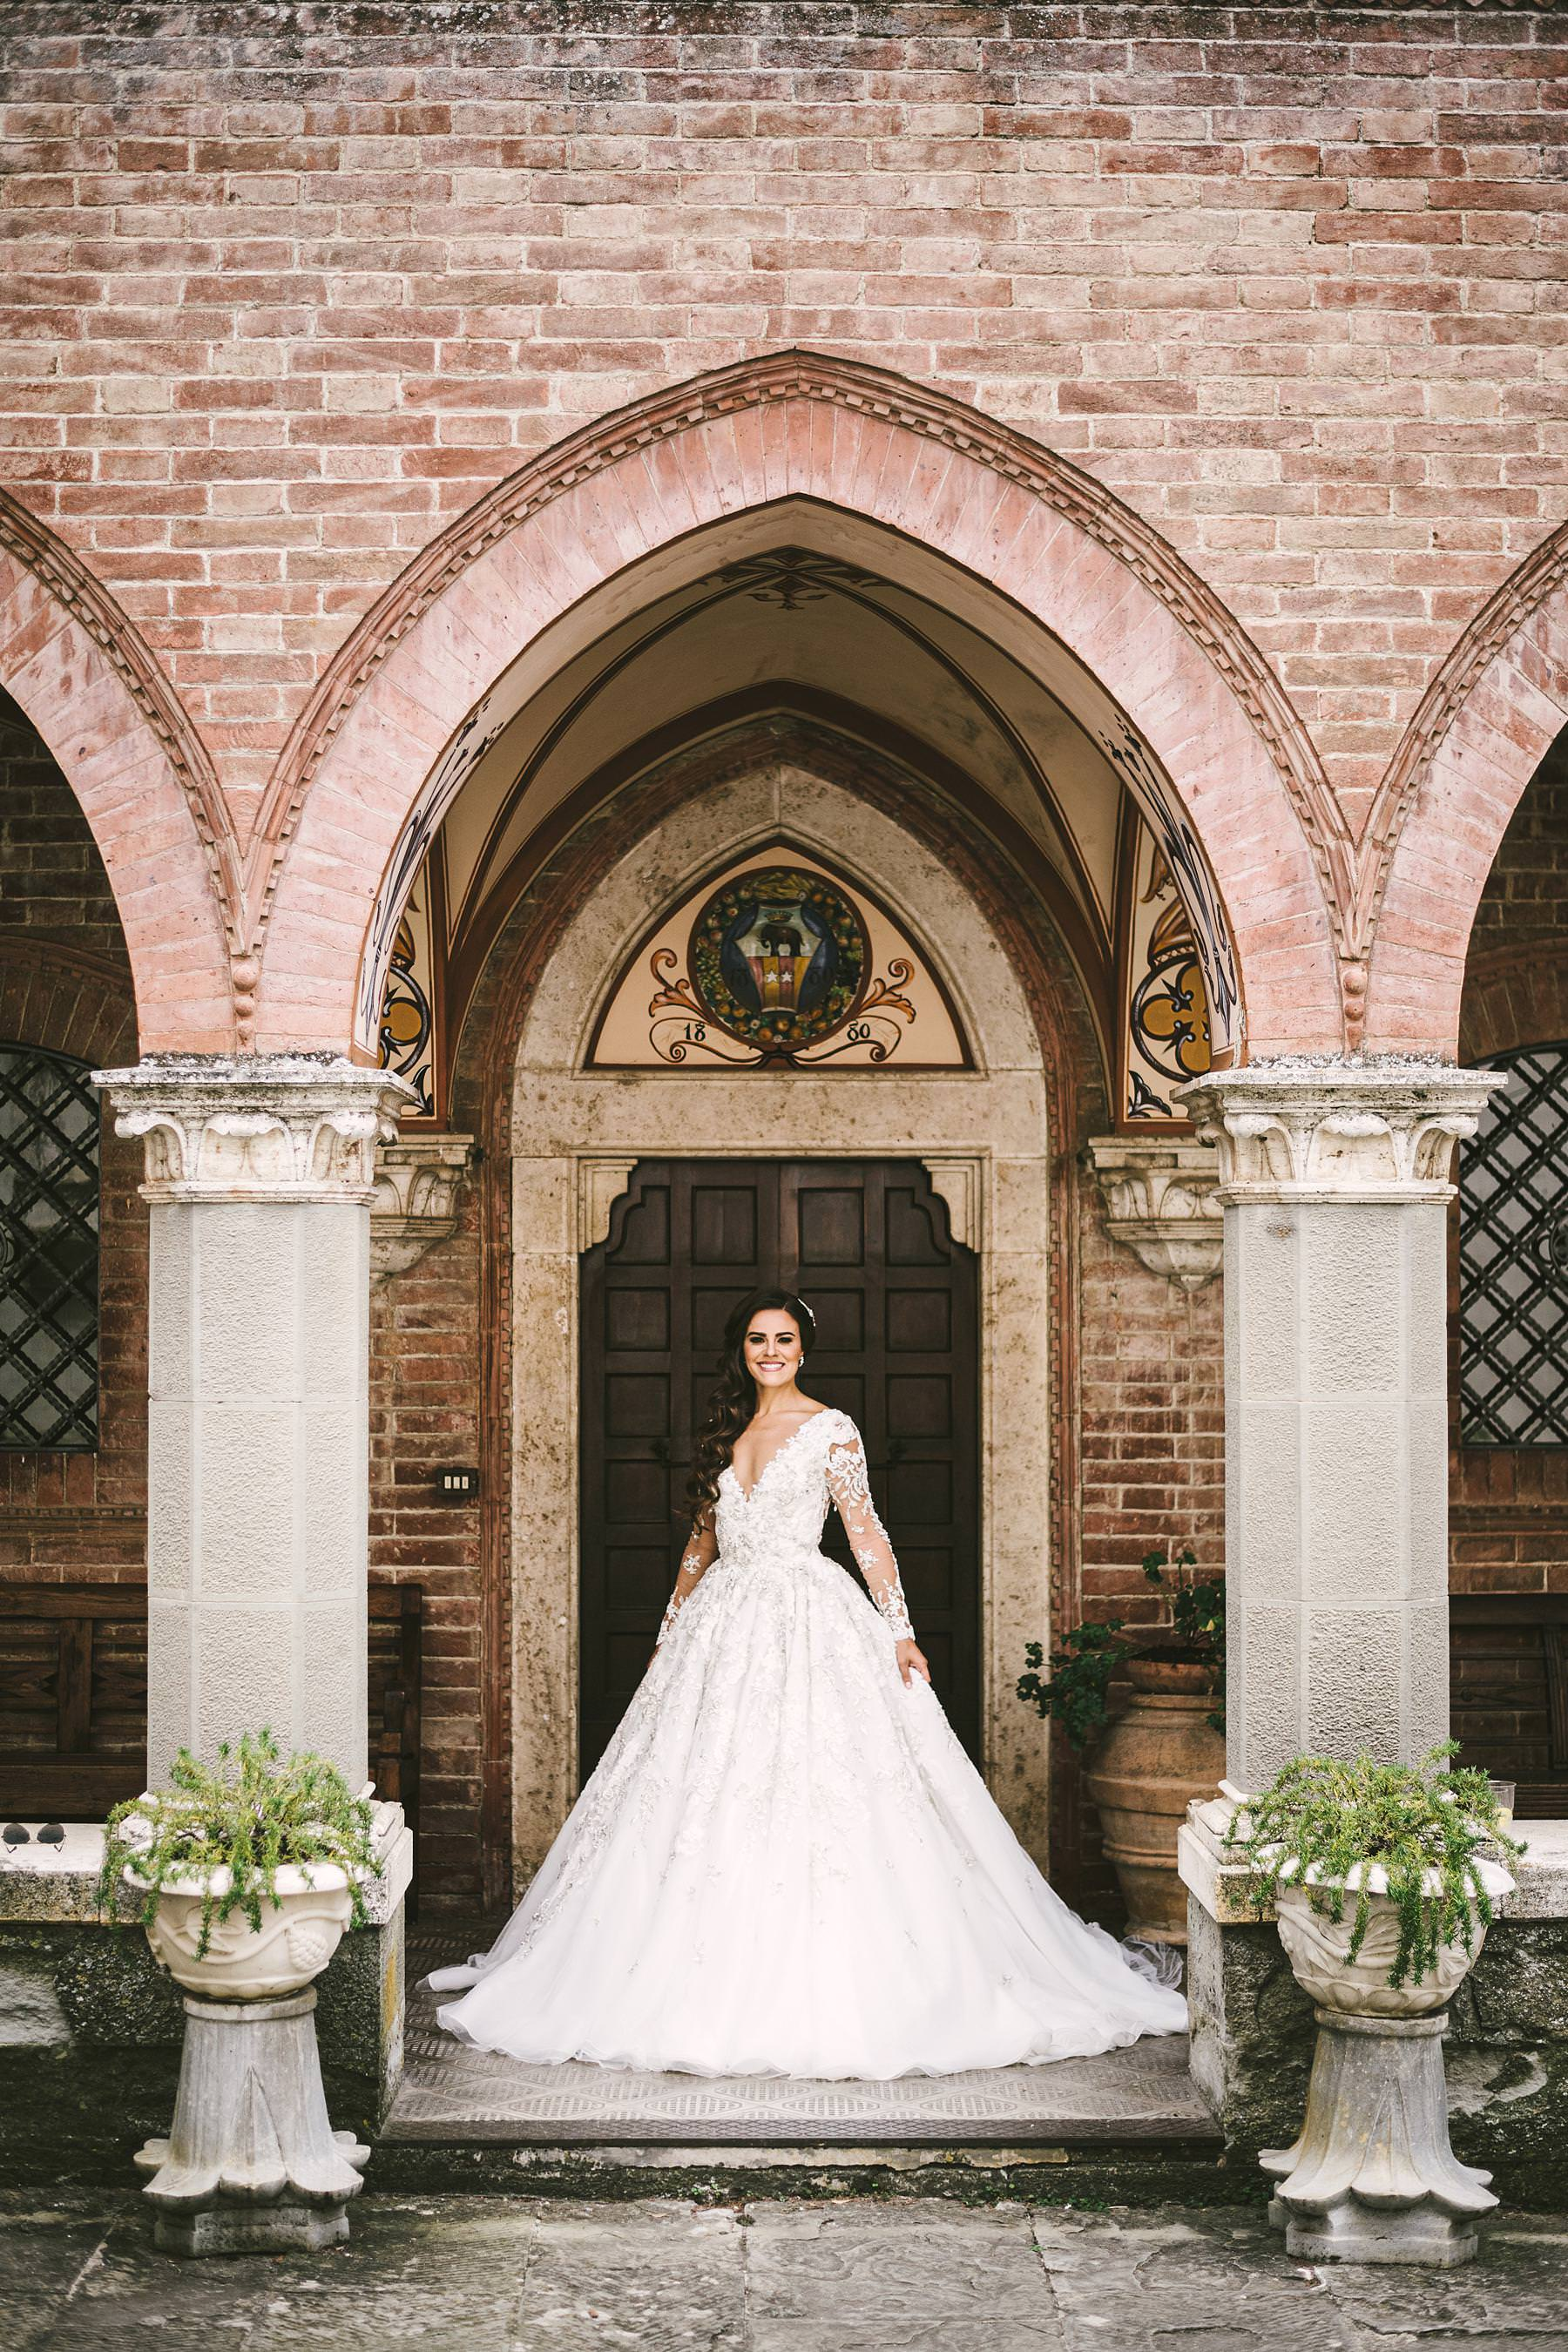 Rippling and sumptuous Tuscany wedding in the elegant Castle of Valenzano. Charm elegant bride Ilyssa in a perfect wedding gown by Ysa Makino